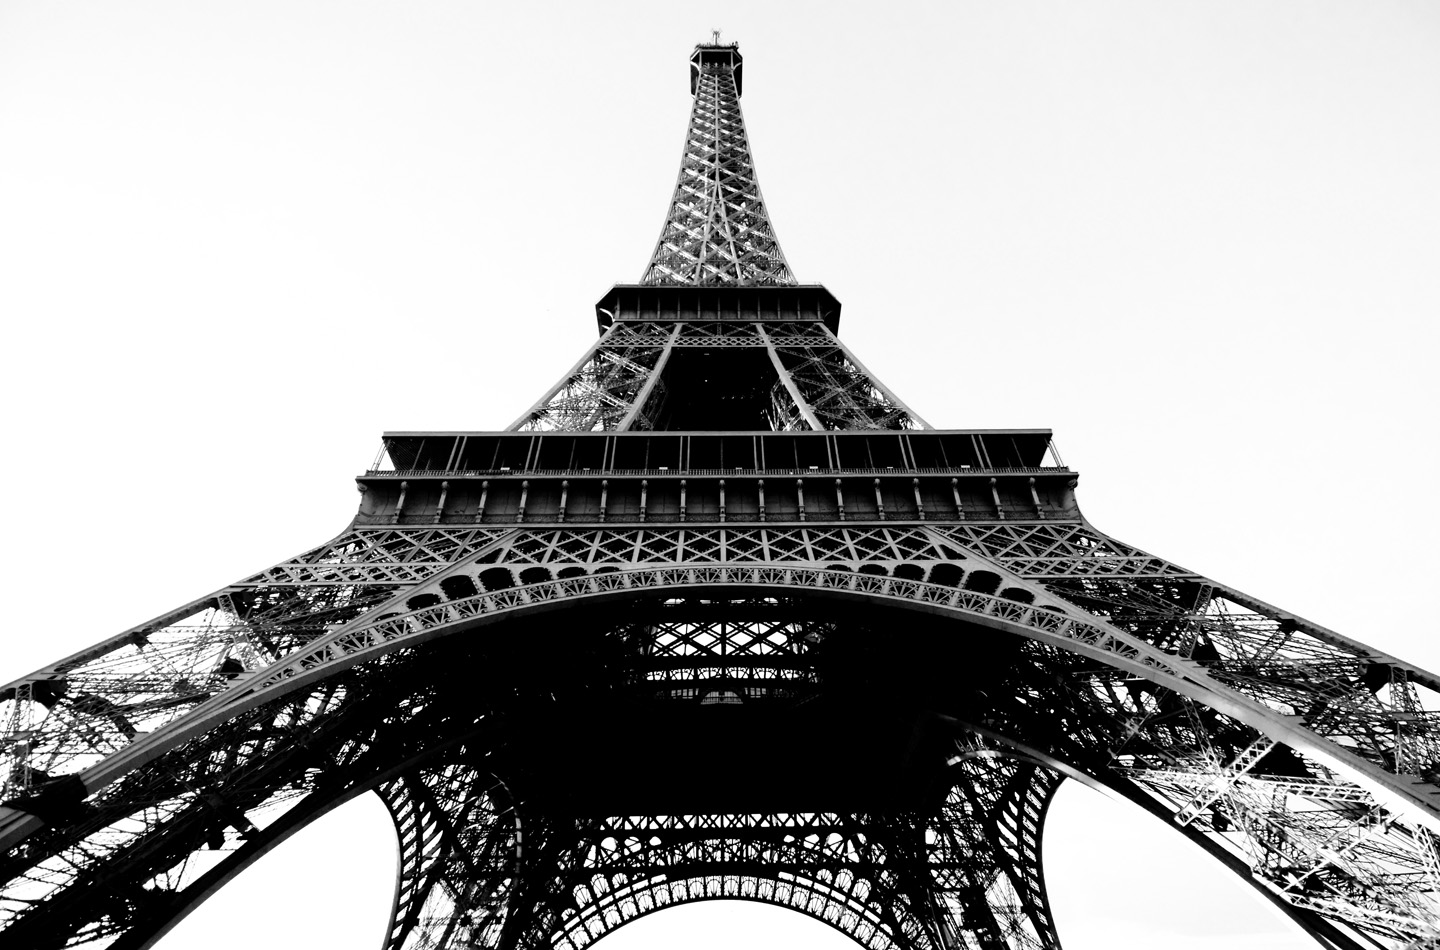 Paris france eiffel tower b w places 2 explore for Eiffel tower mural black and white